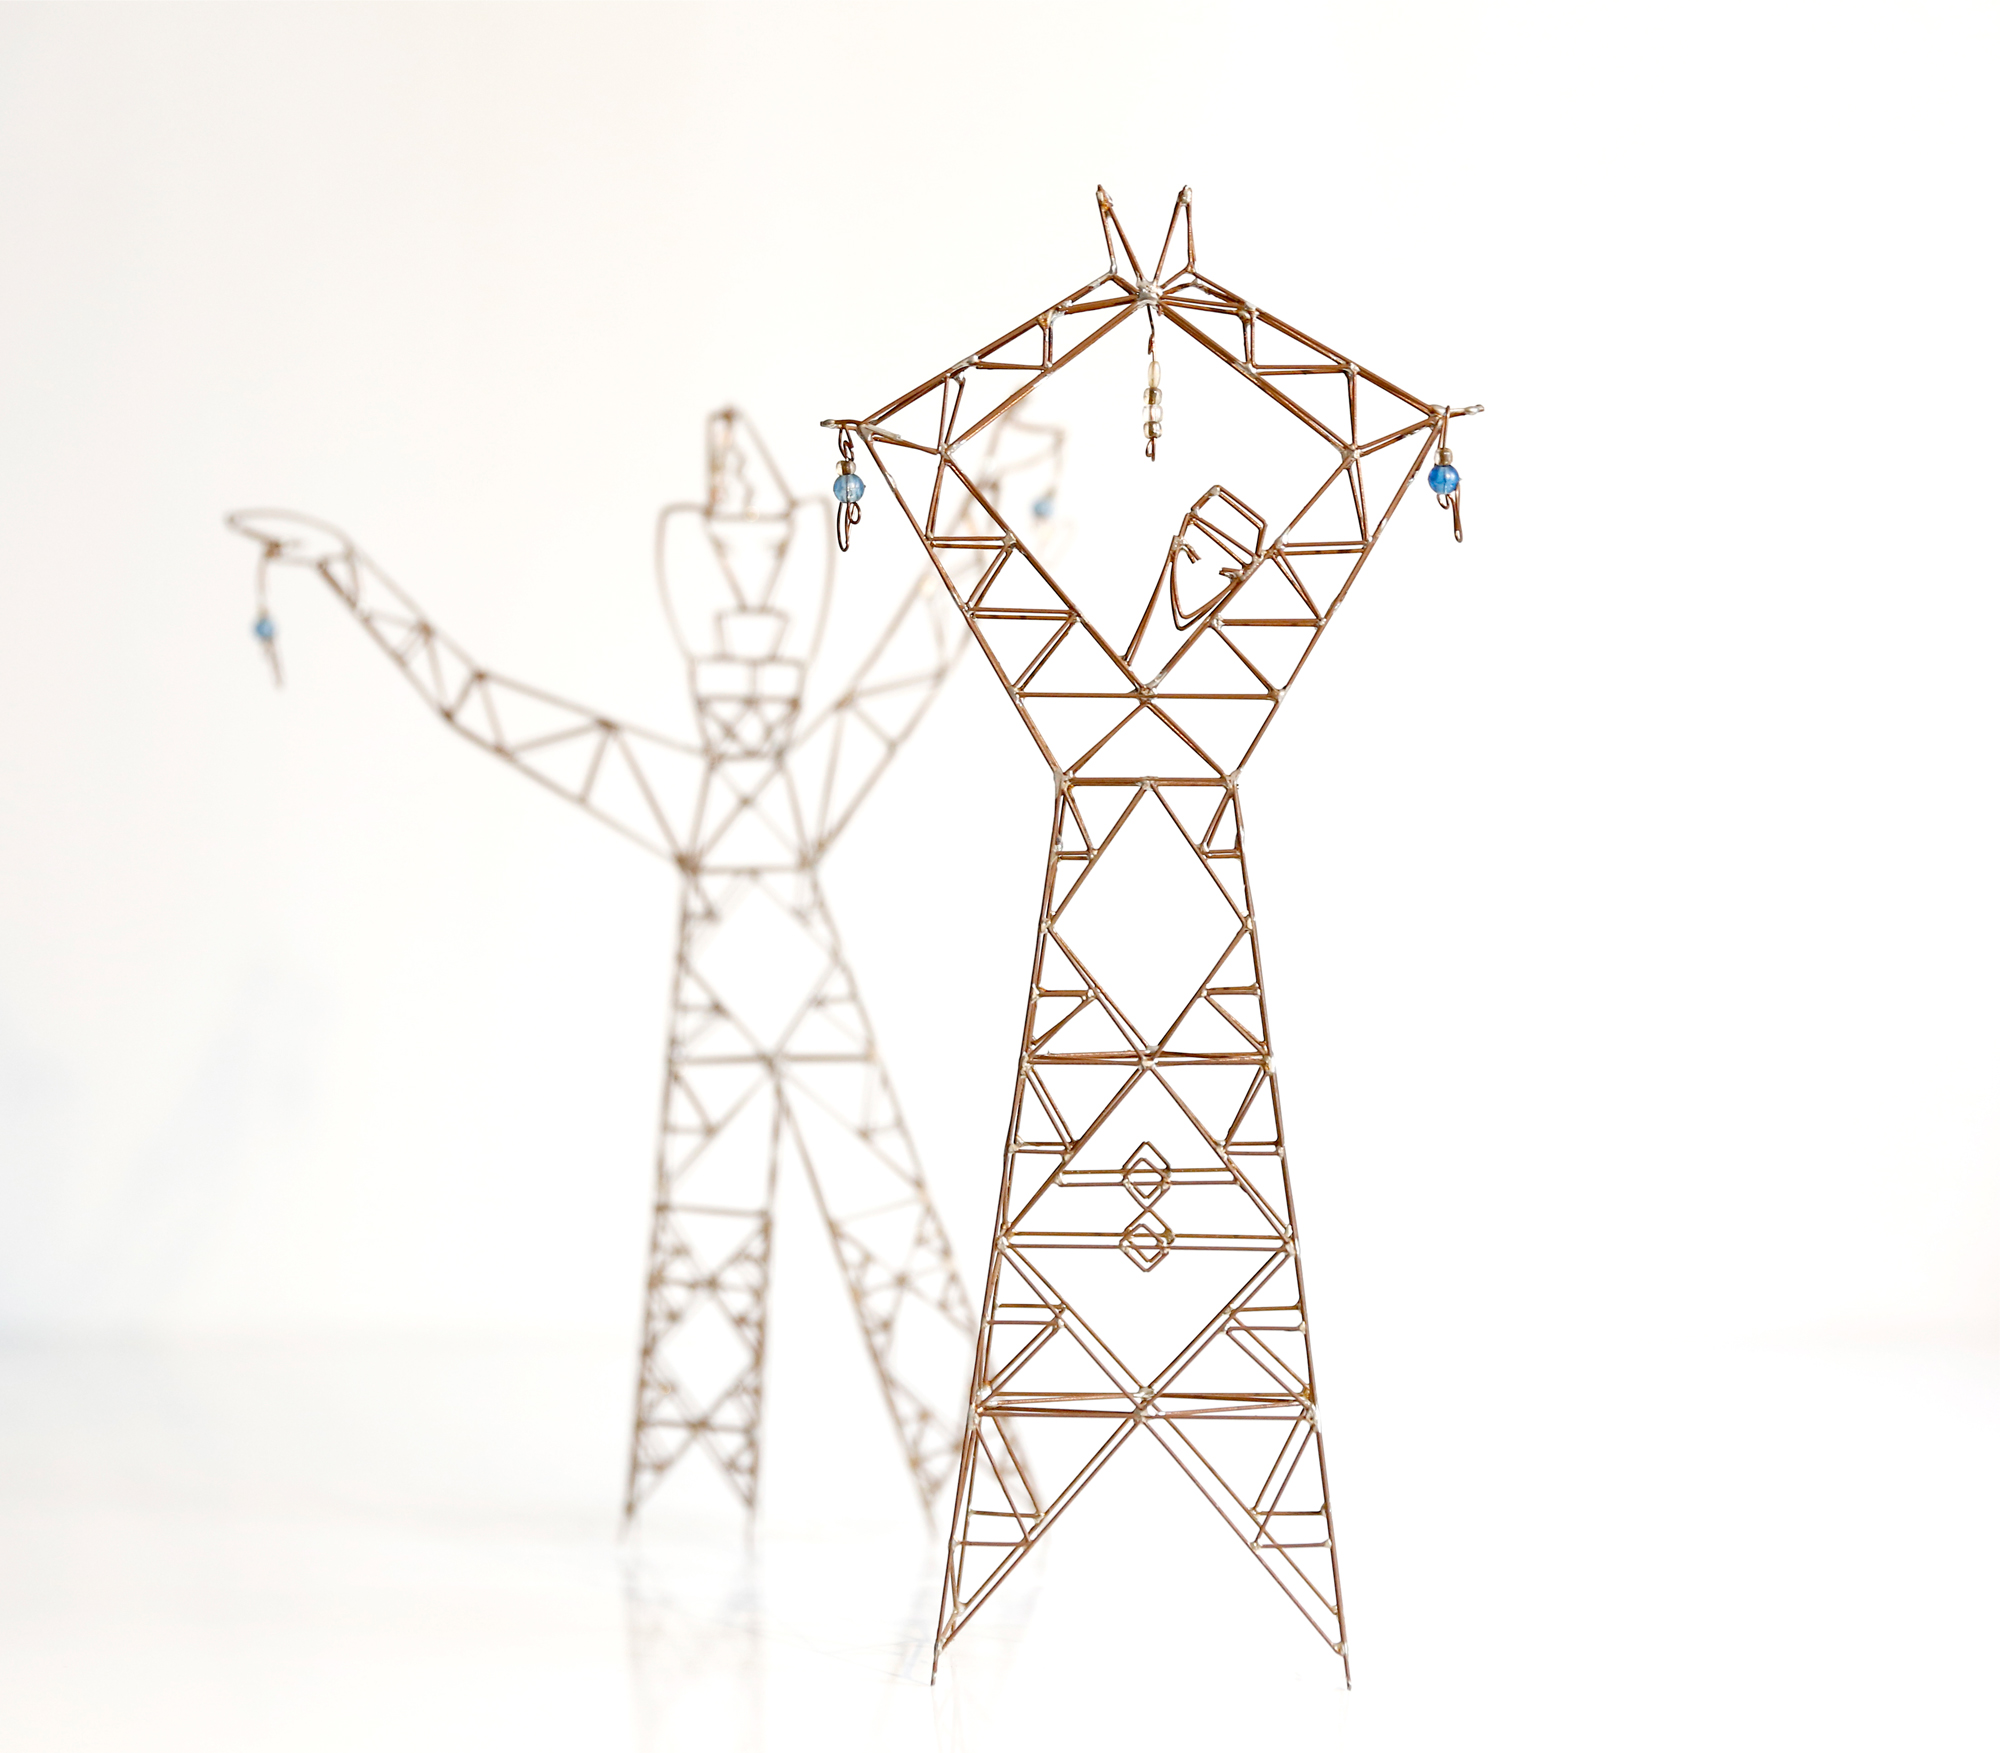 Melina and Bella, Sculpture-Pylons